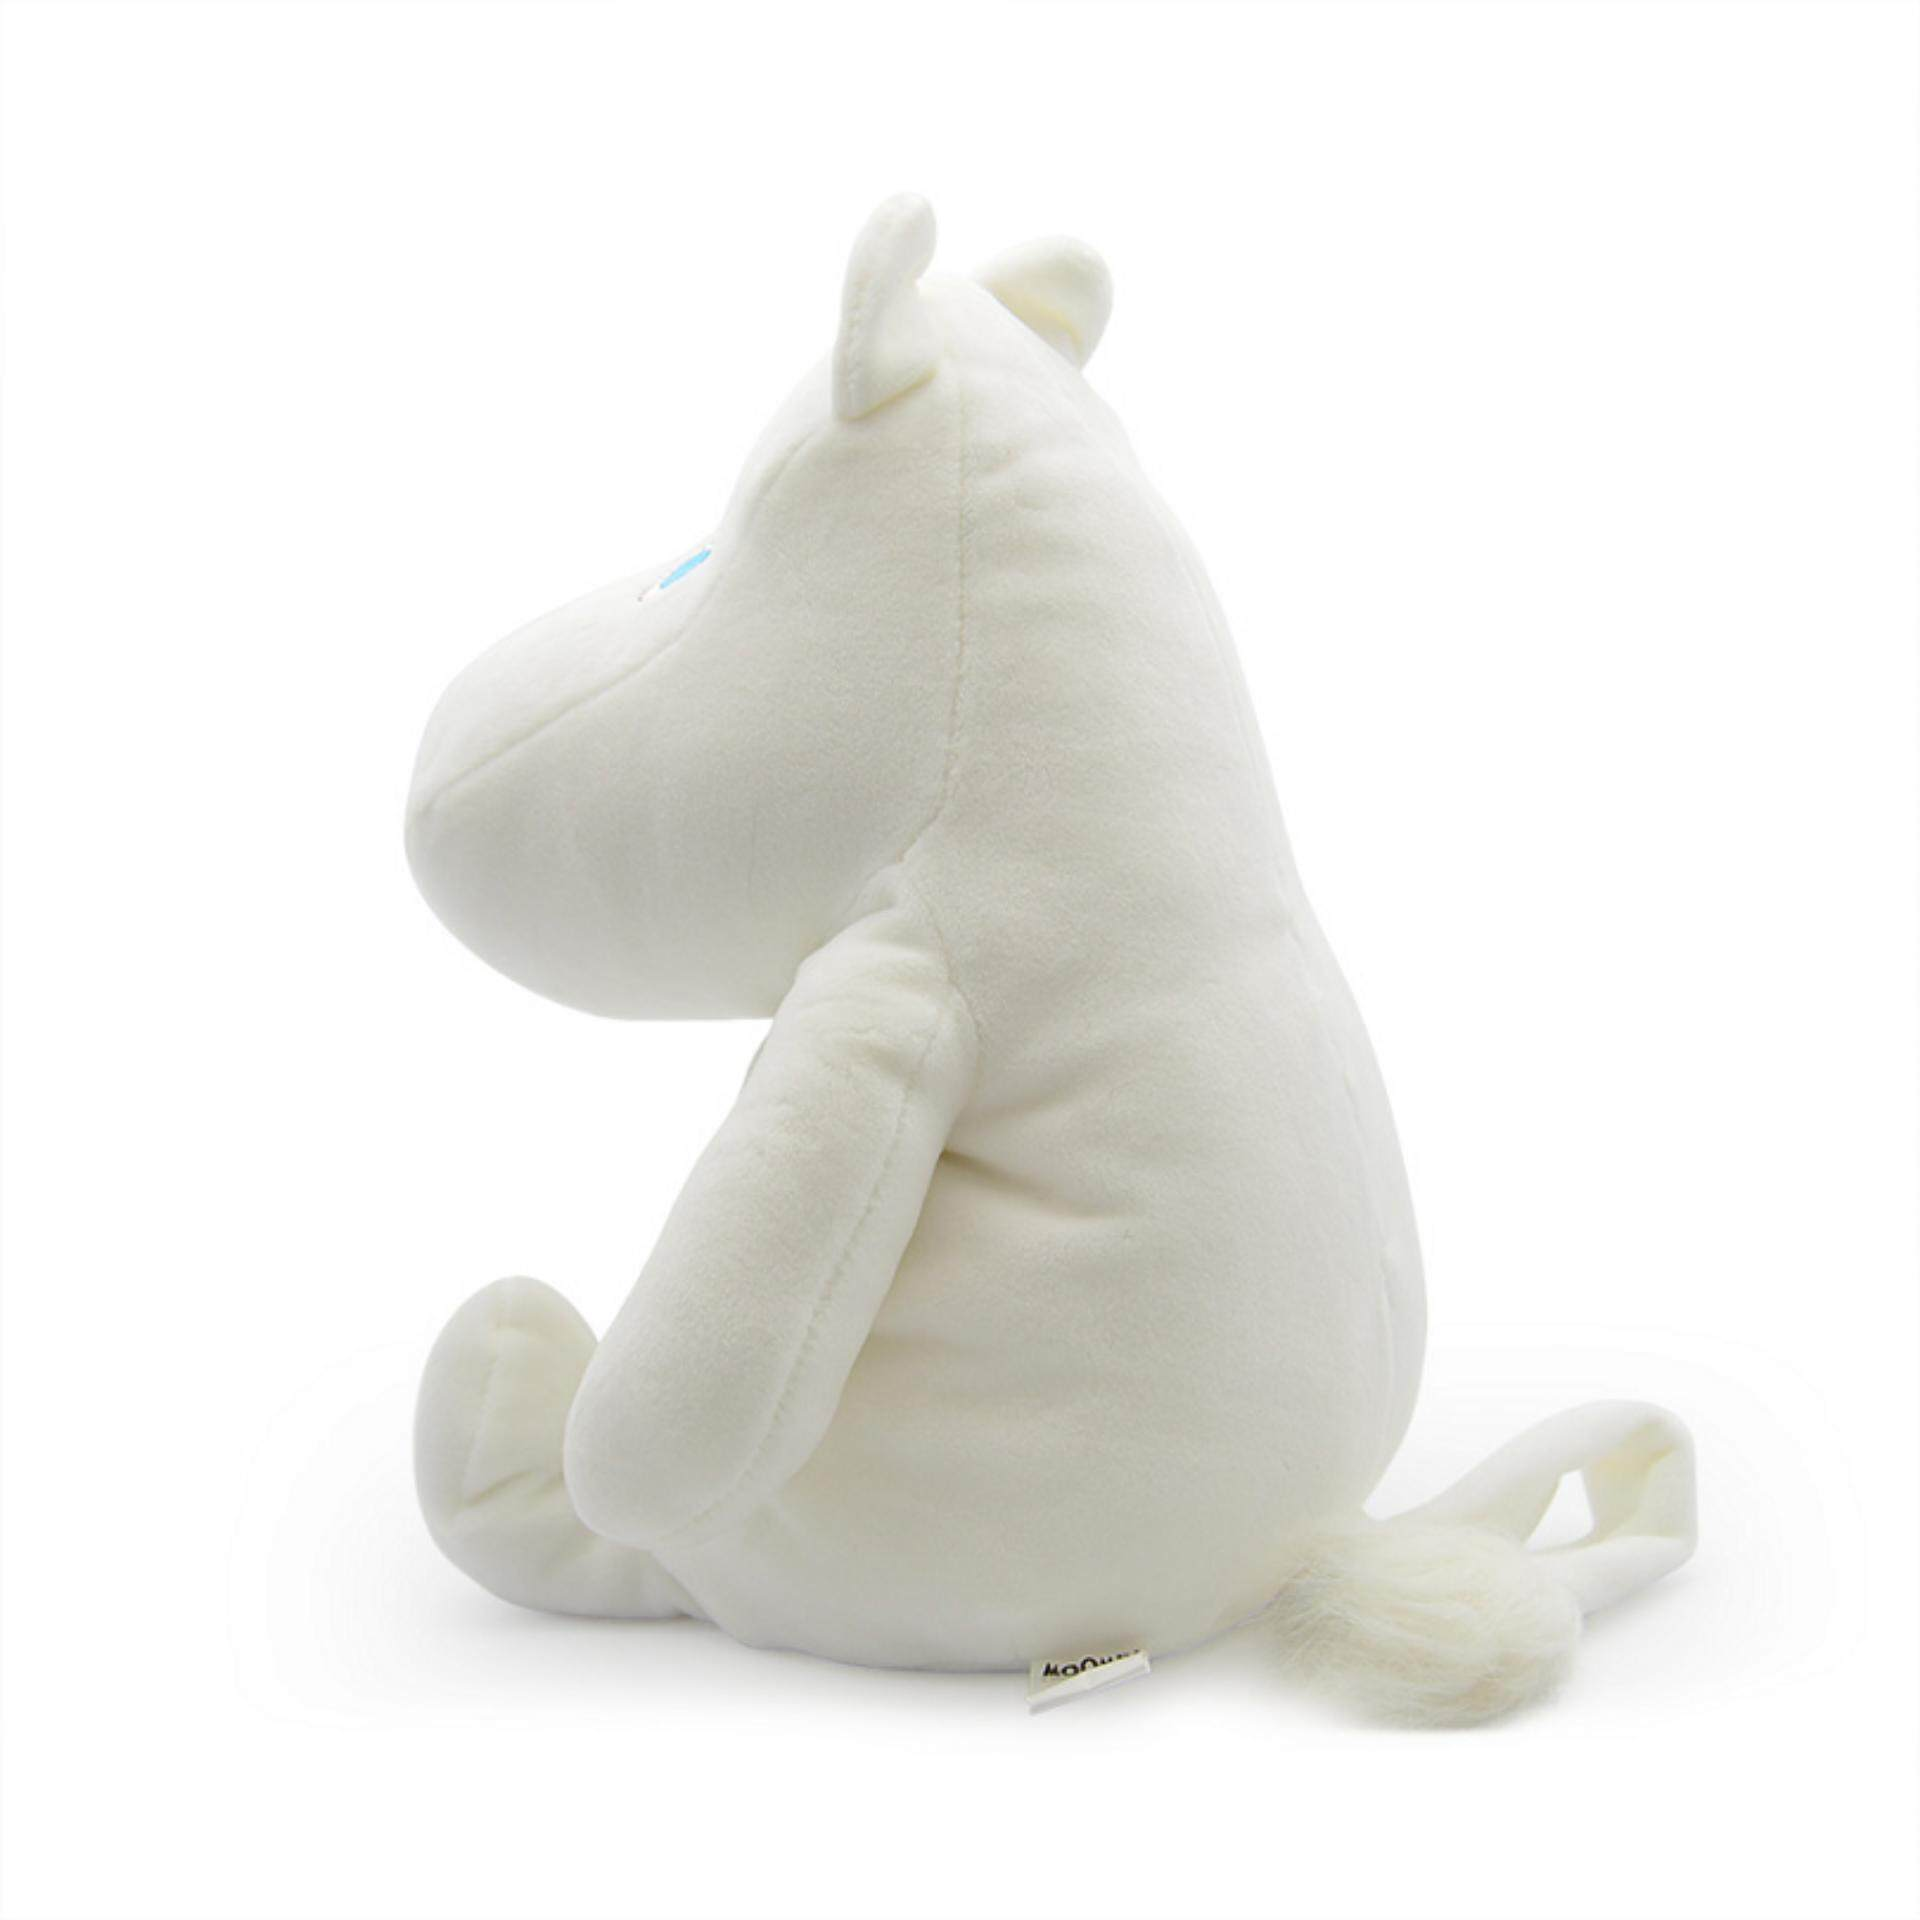 Moomin 28cm Height Plush Toy - Moomin toys for girls